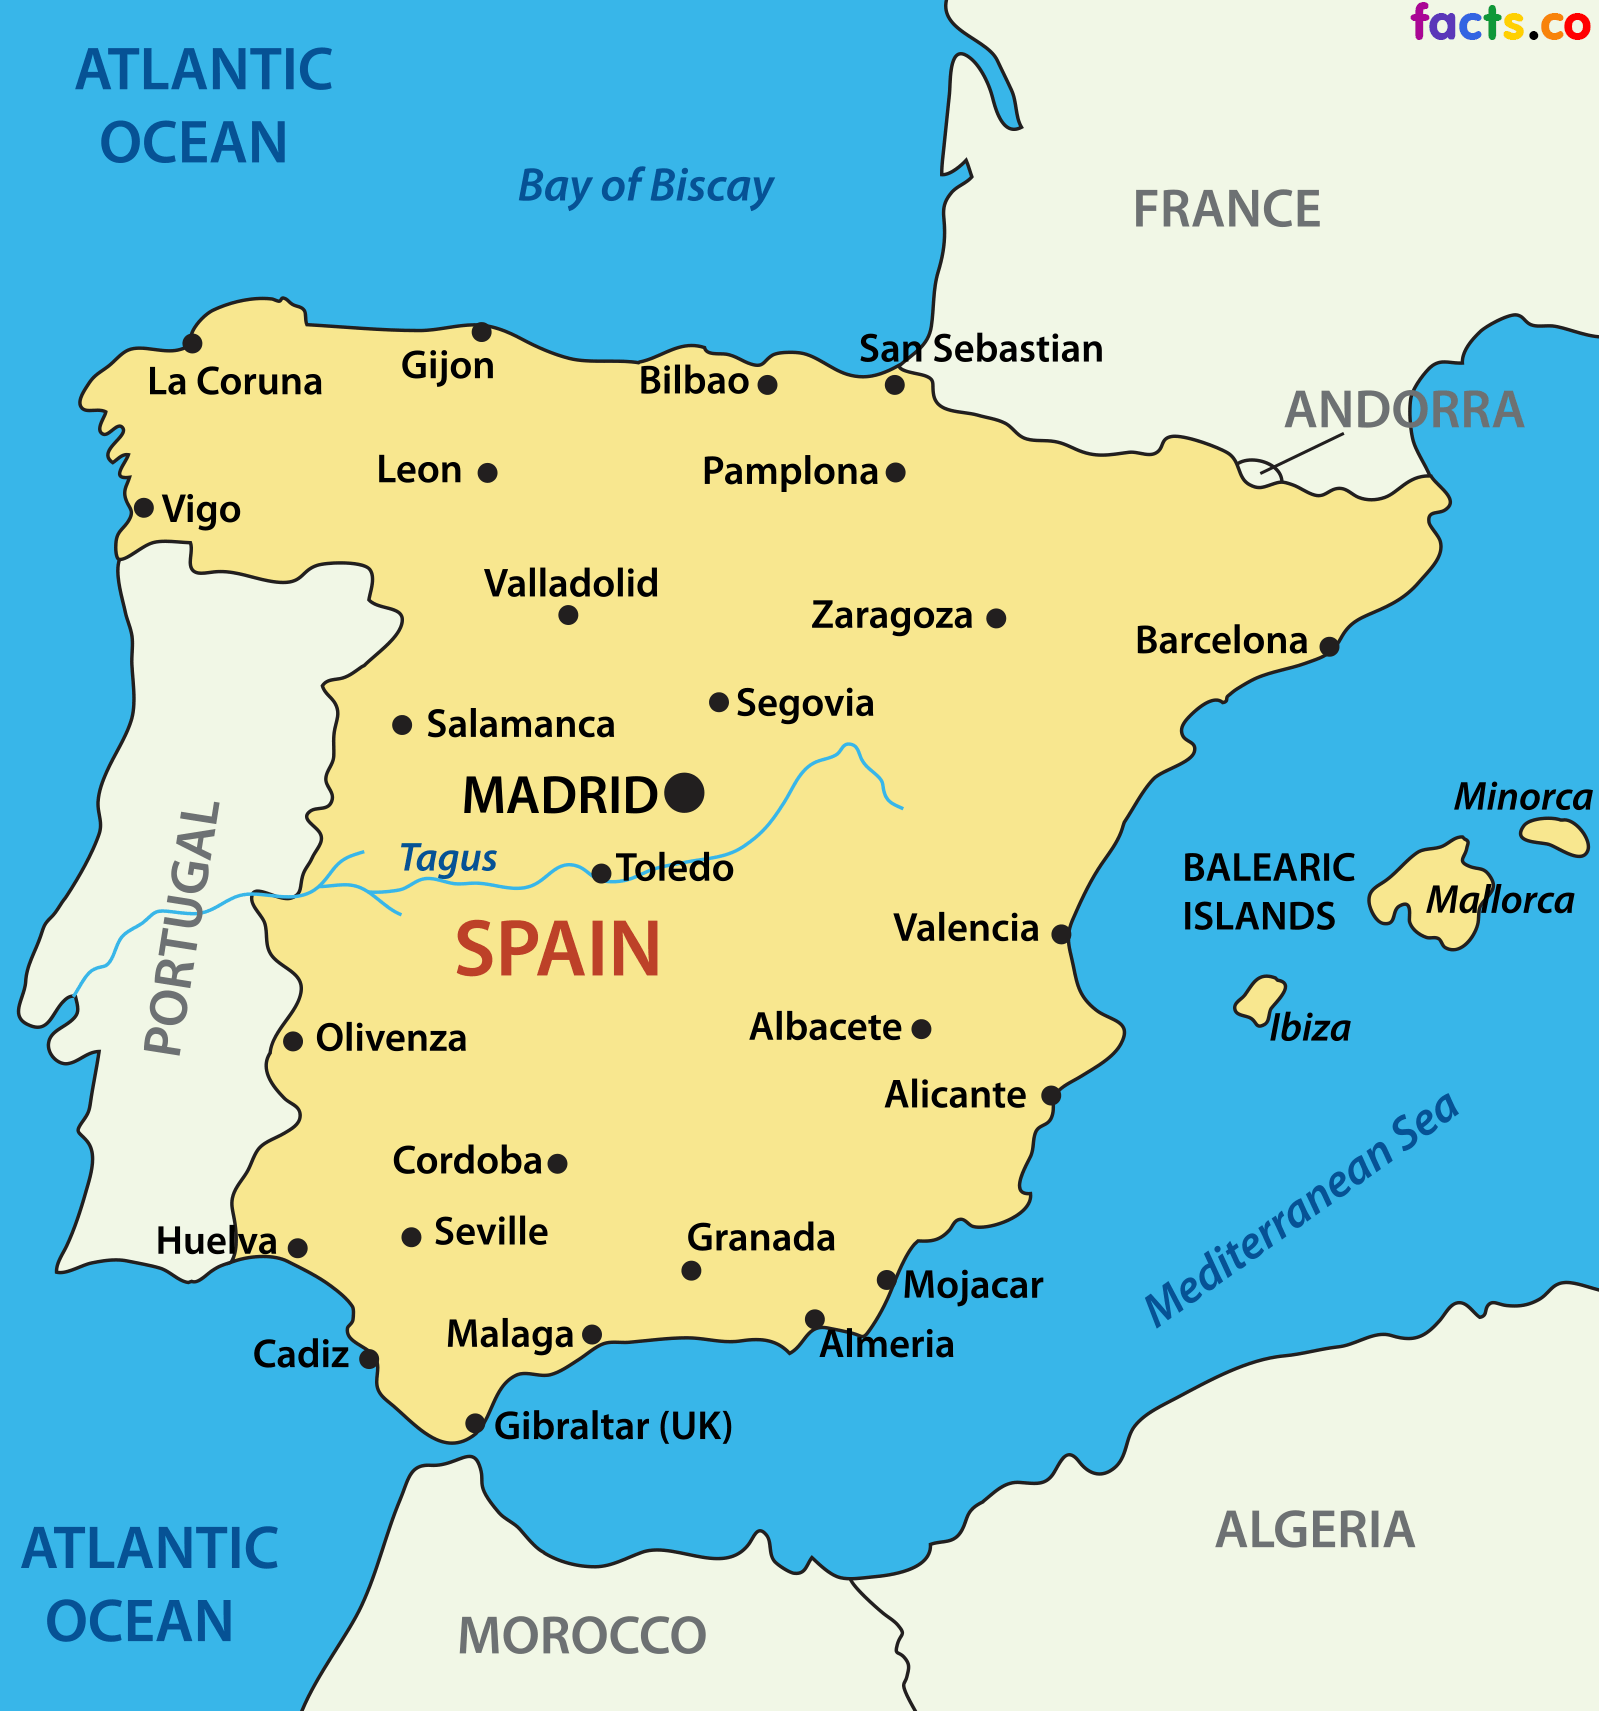 Map Of Spain And Surrounding Countries.Map Of Spain Portugal And Surrounding Countries Year Of Clean Water